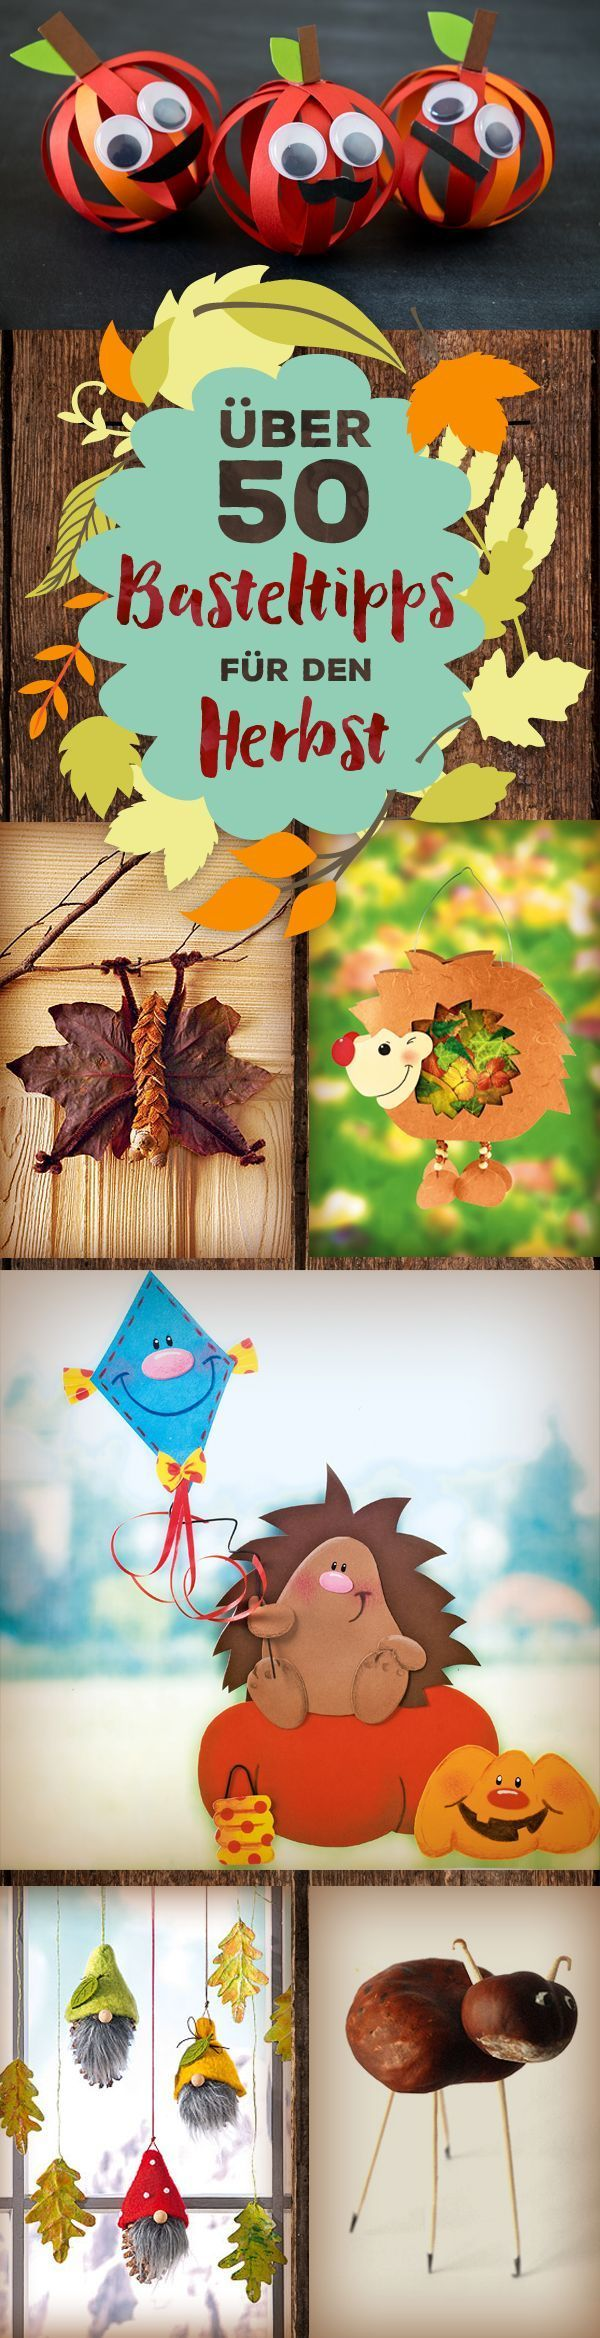 34 best für Kinder images on Pinterest | DIY, A flower and Bracelet